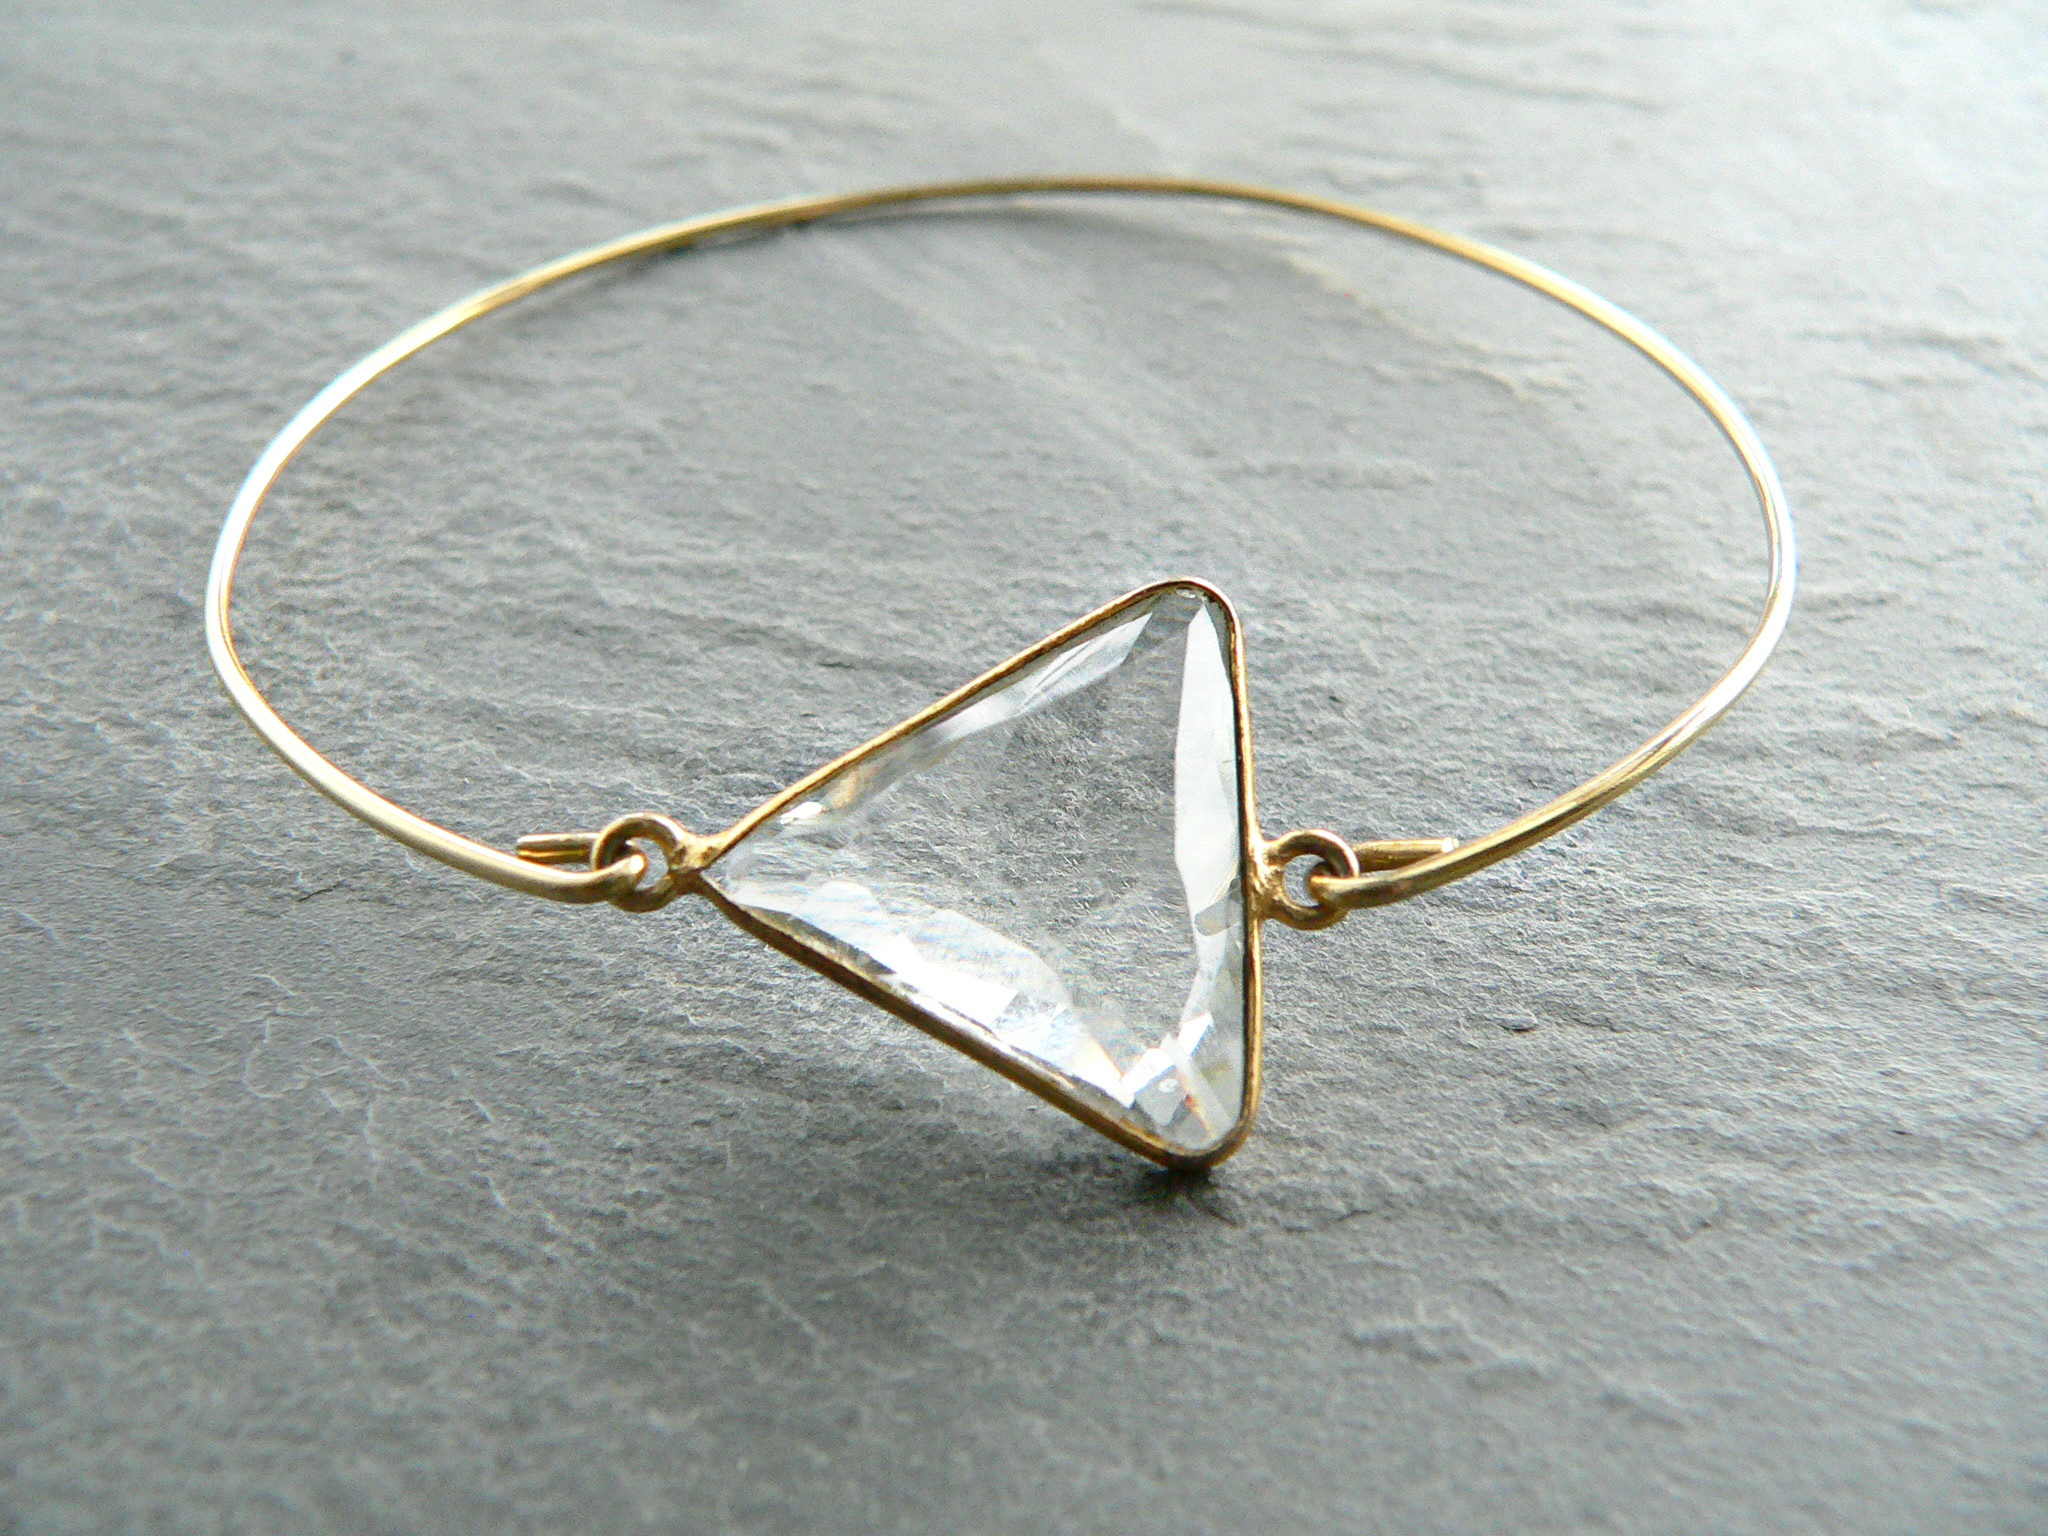 QUARTZ CRYSTAL TRIANGLE BRACELET